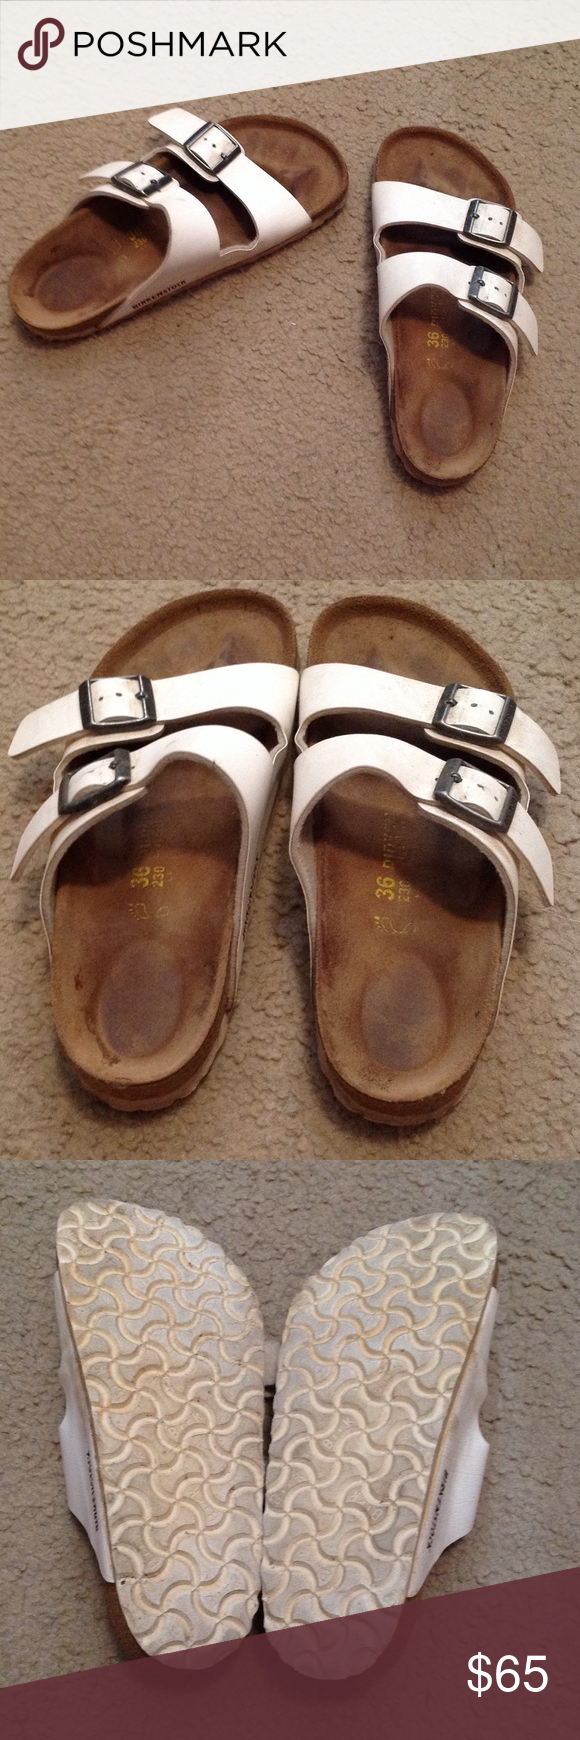 5723be8c544b White Birkenstock Sandals size 36 These are in used condition